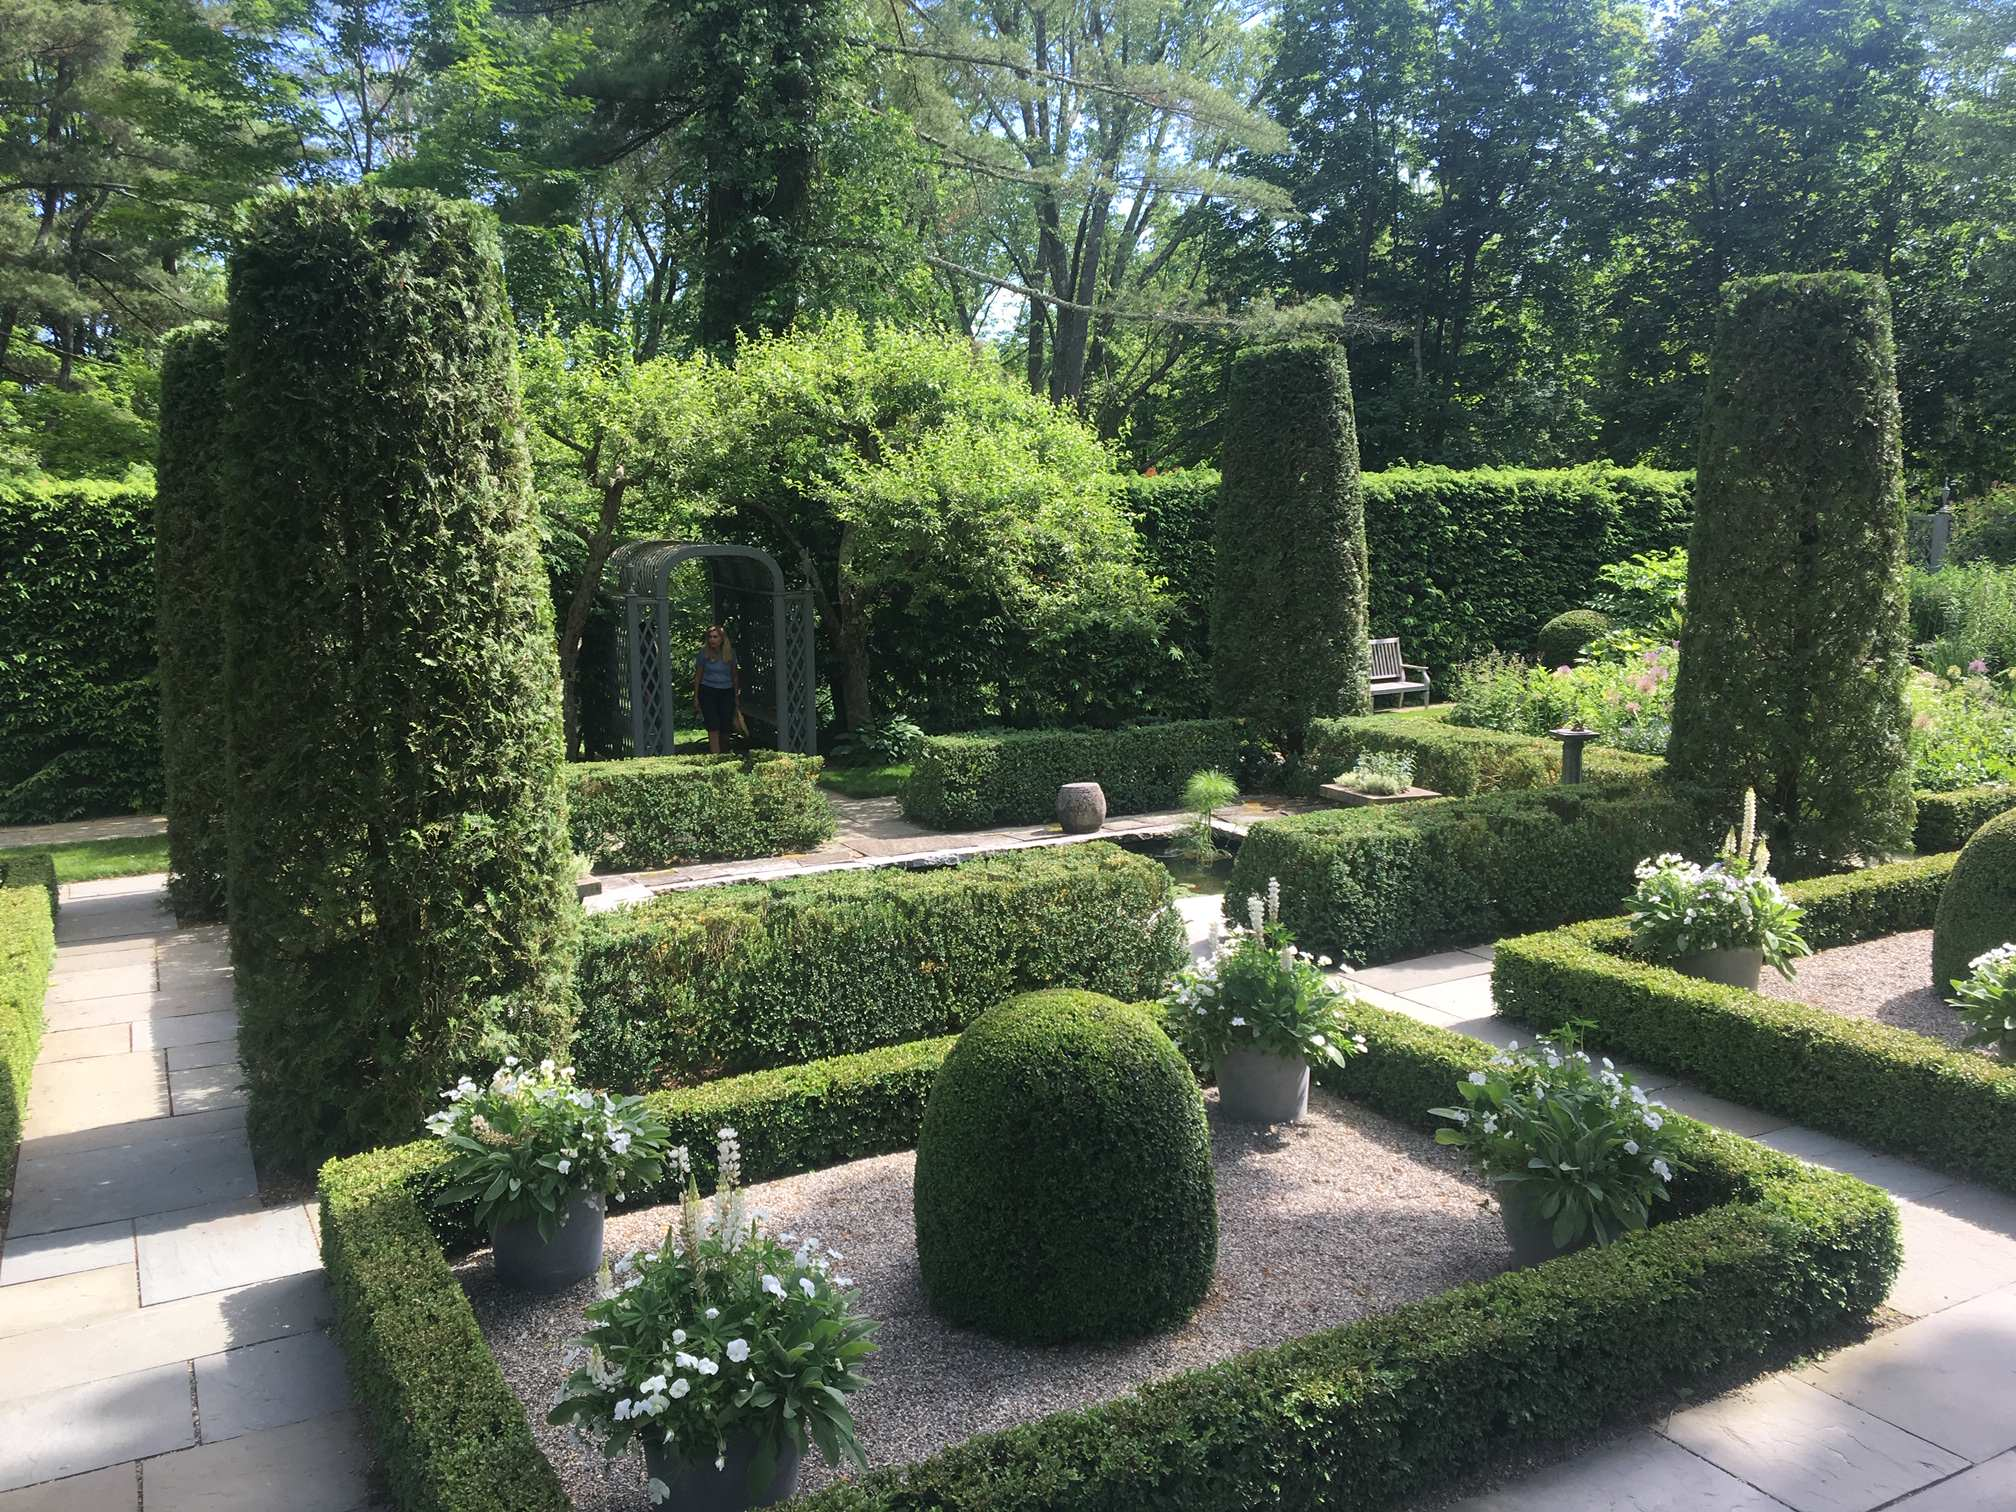 Formal Gardens with Boxwoods, Topiaries and Plants